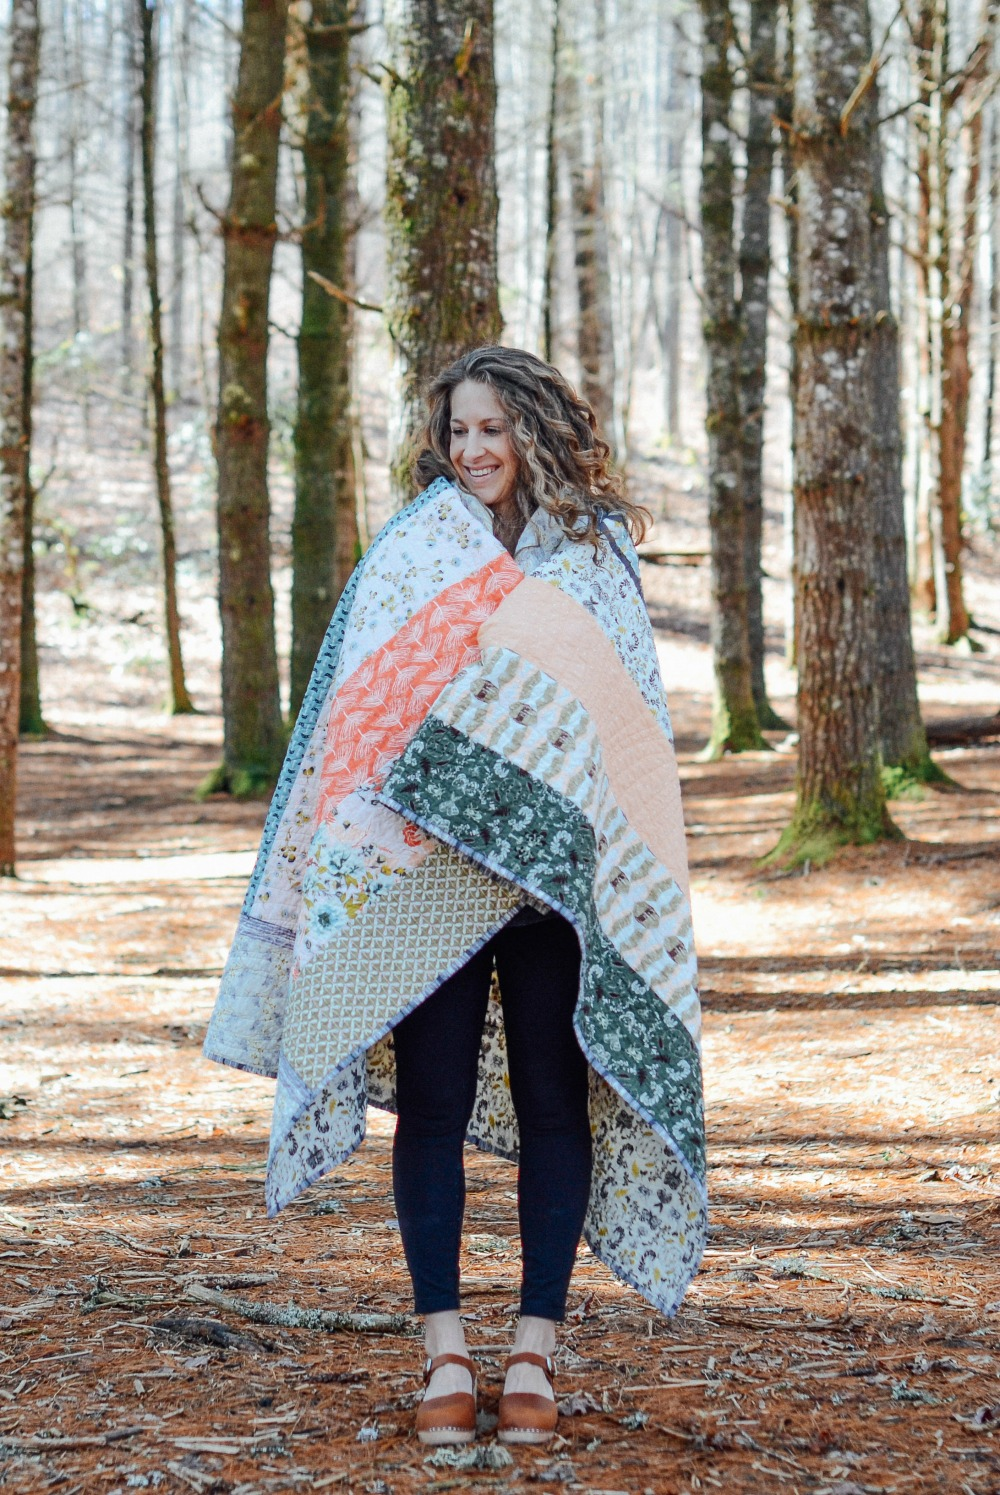 Bonnie Christine all wrapped up in Forest Floor Fabric!